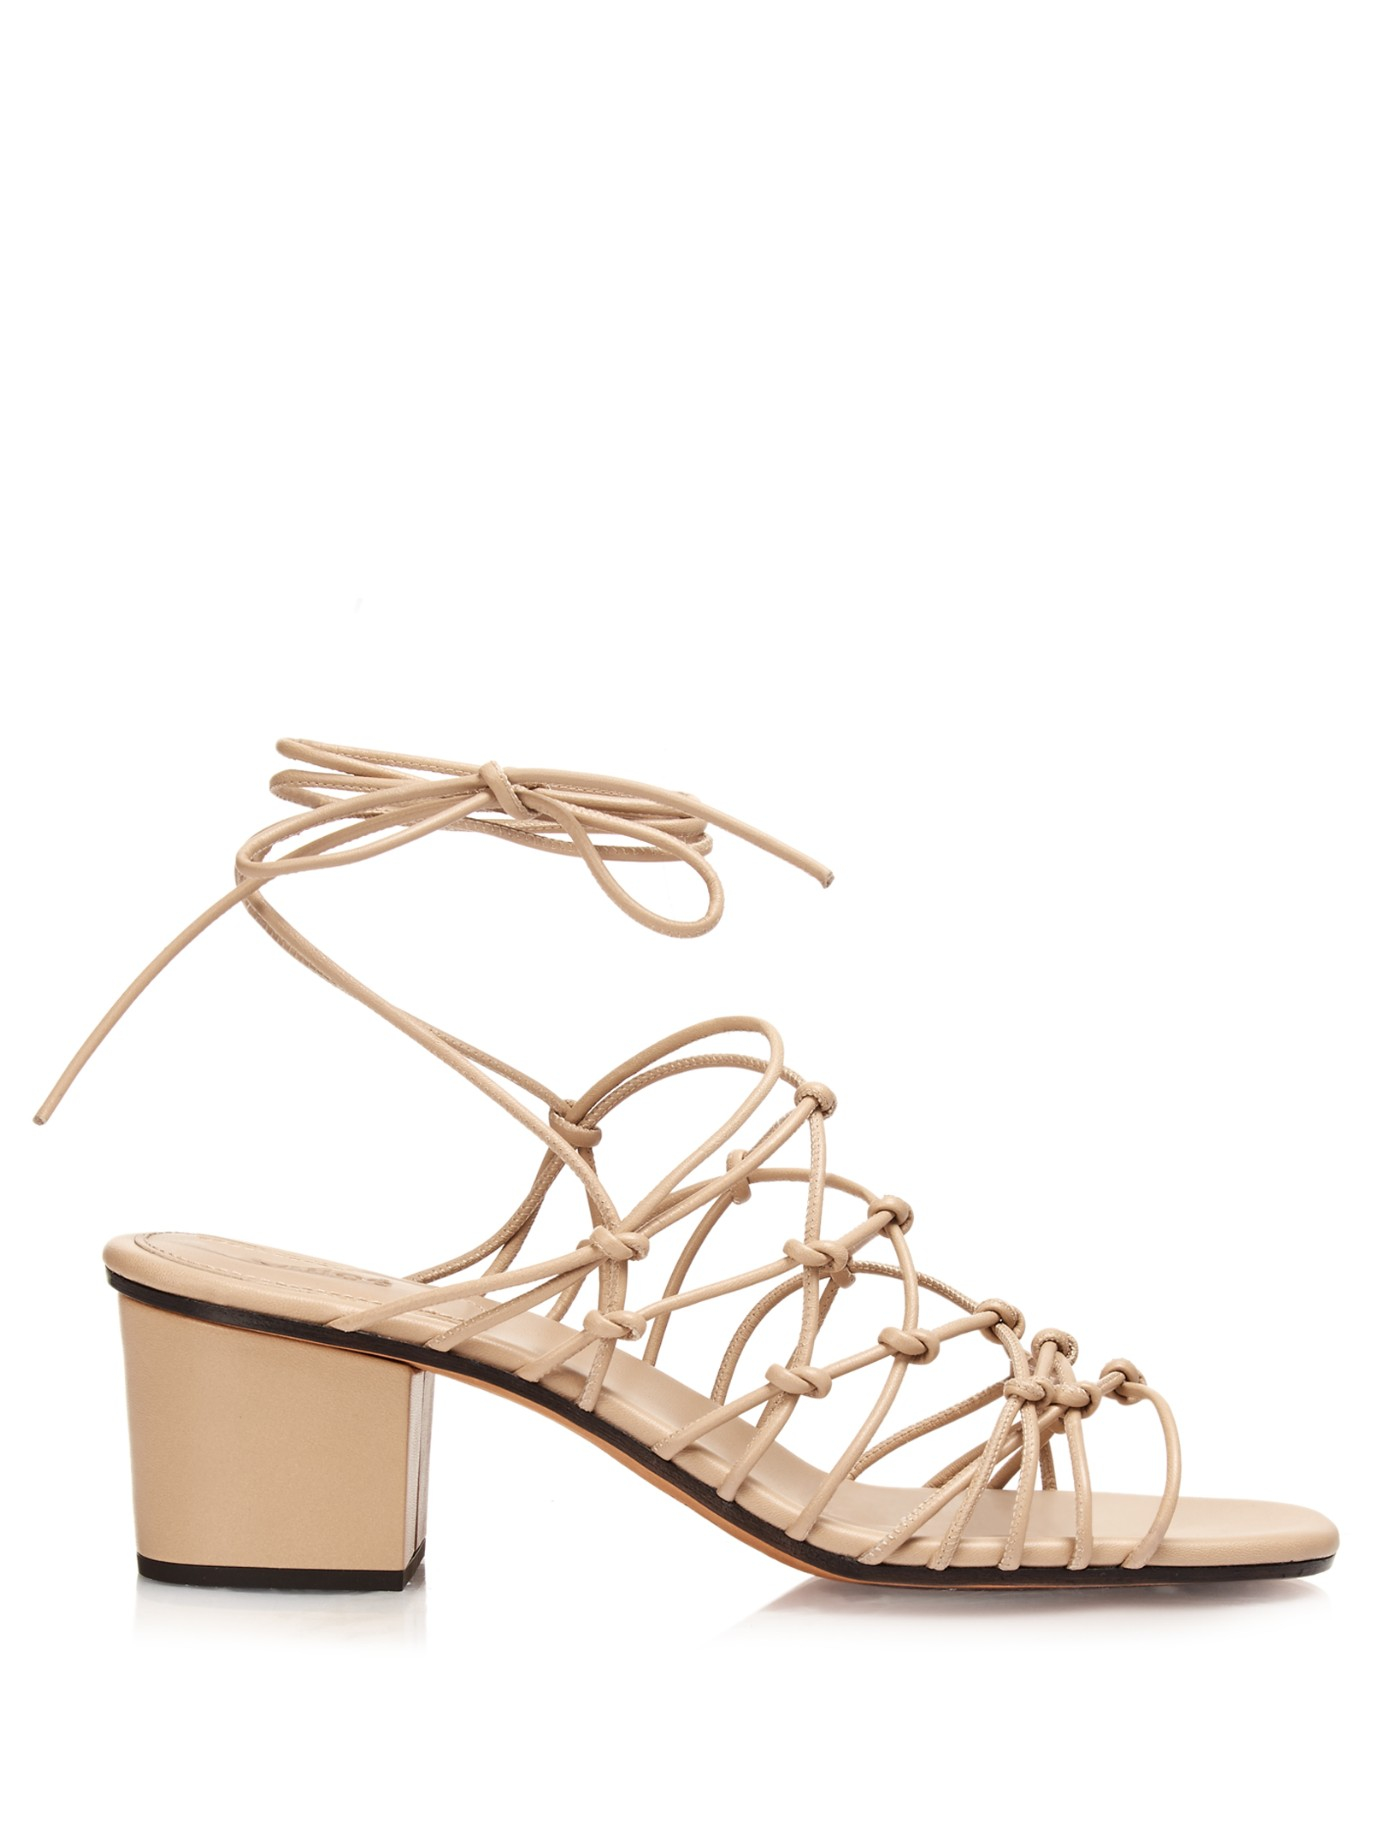 d285c0f5a29 Chloé Natural Multi-strap Block-heel Leather Sandals